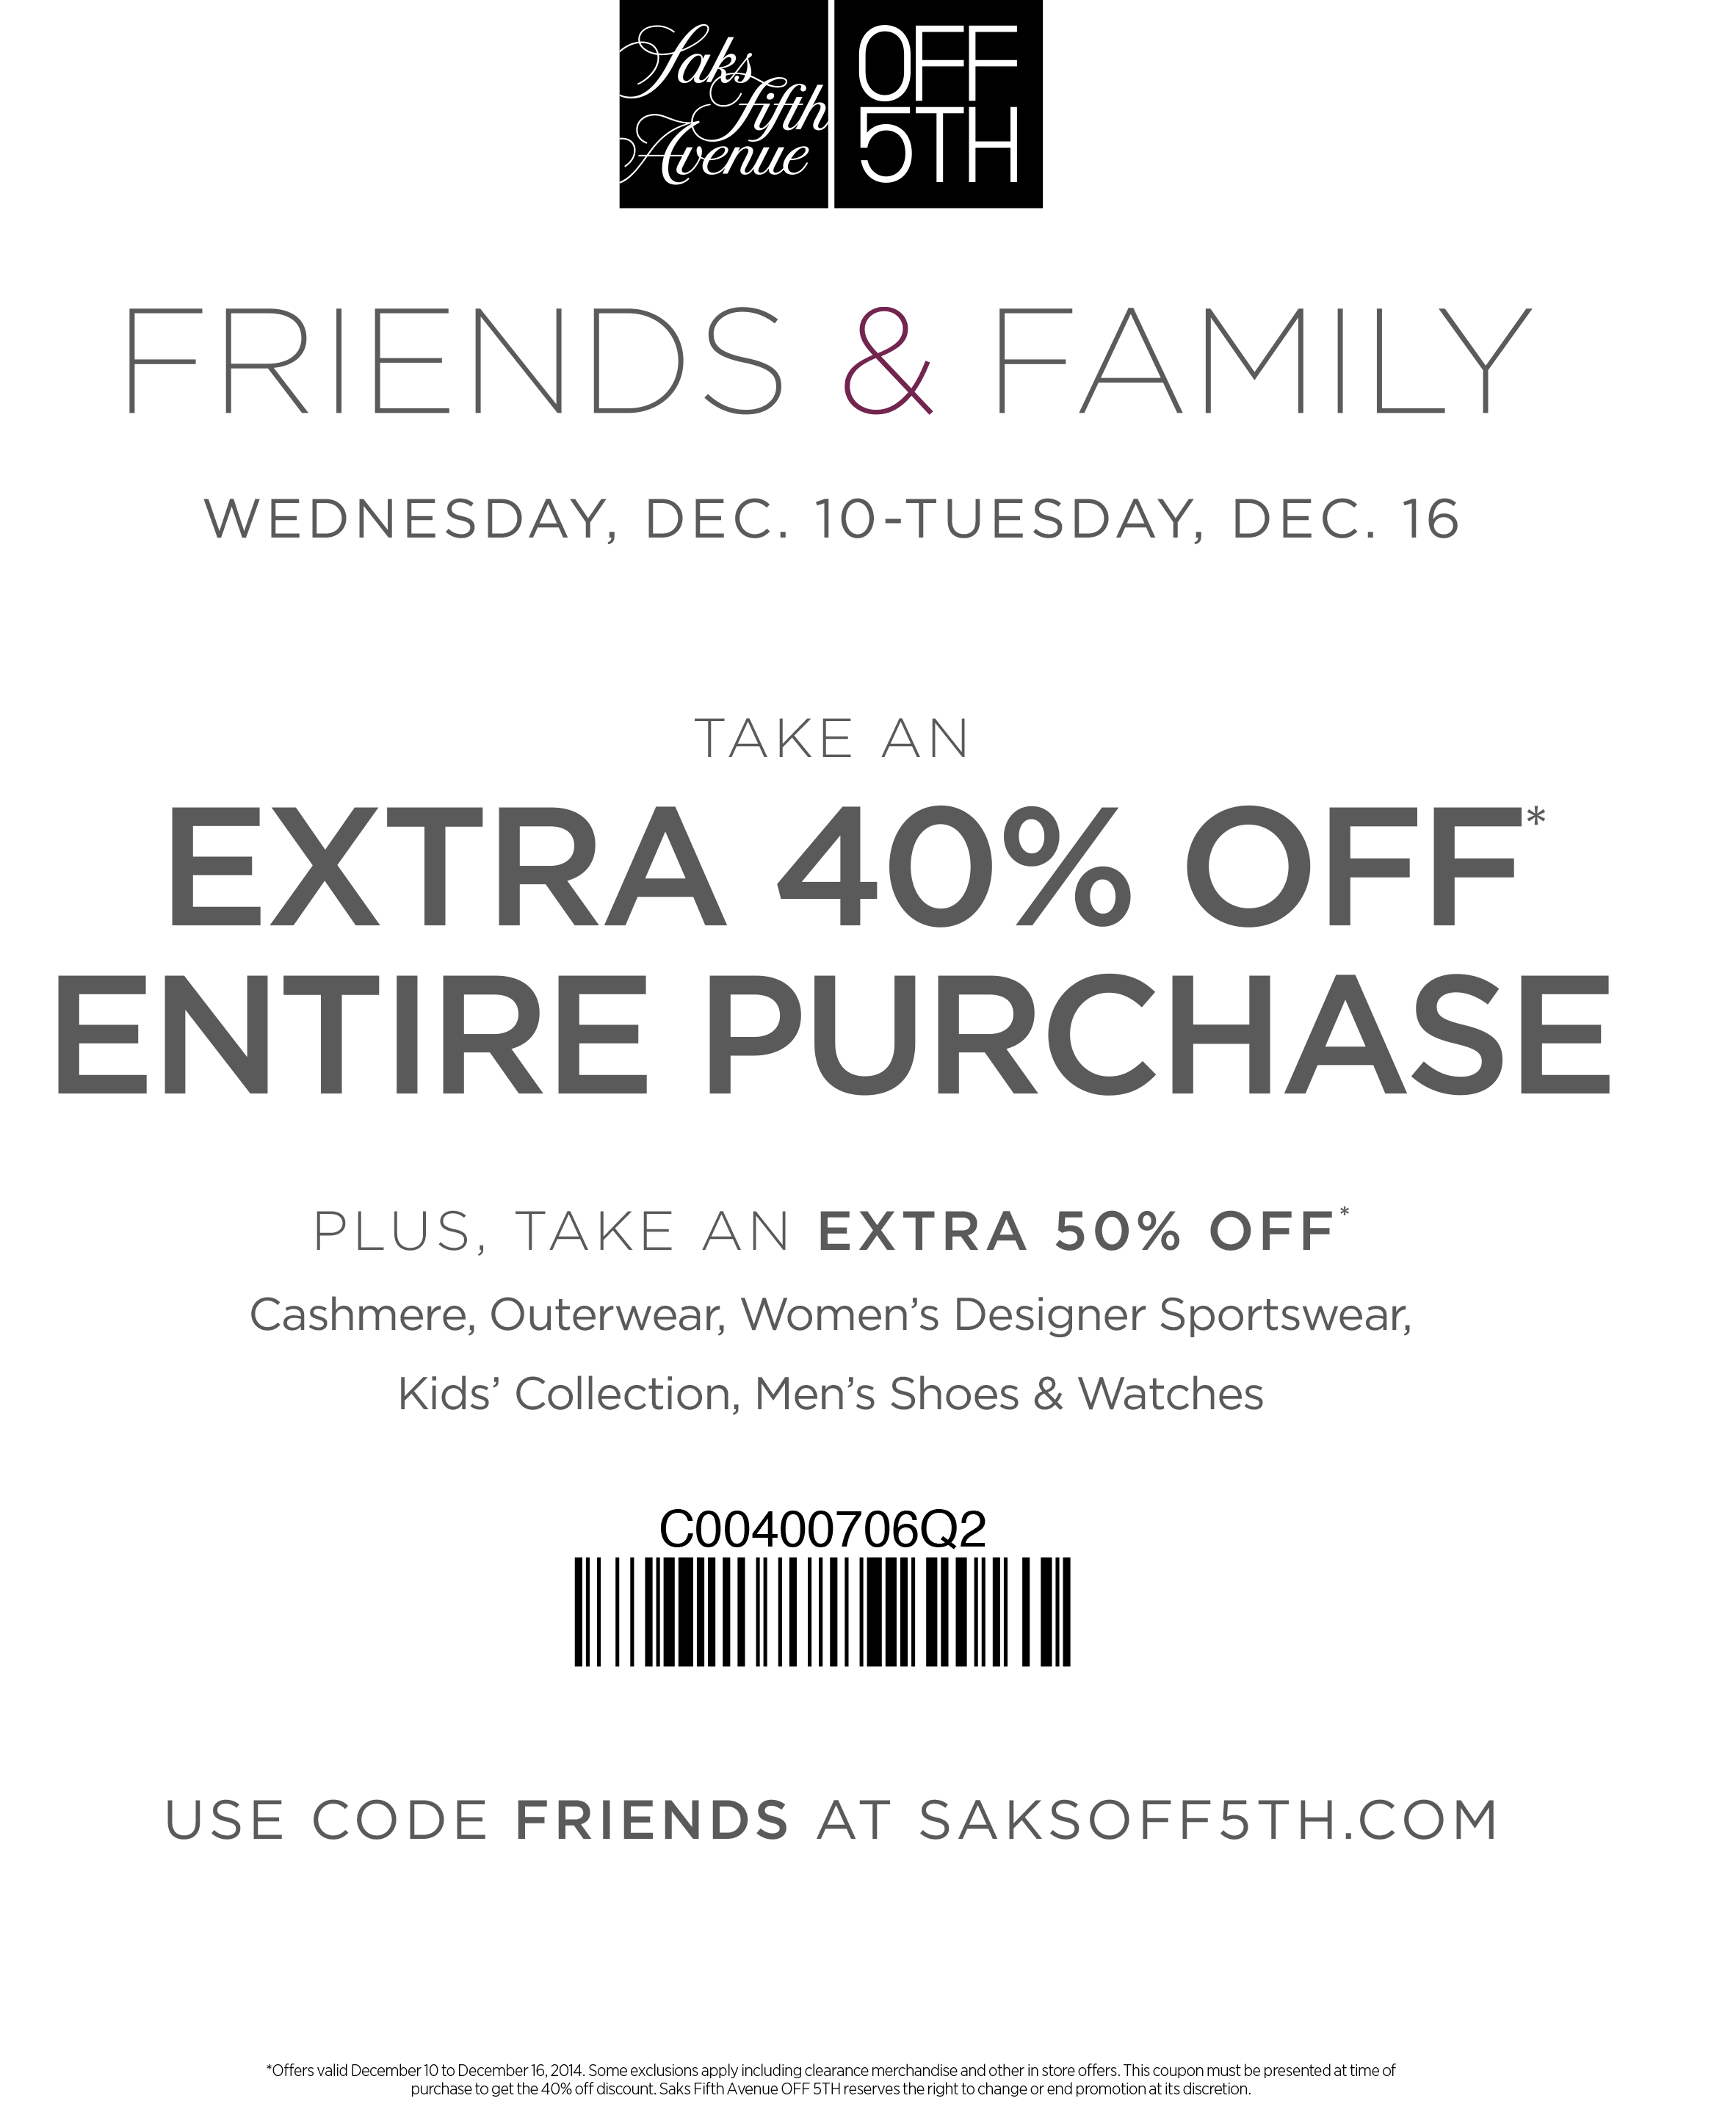 saks fifth avenue coupon code 10 off